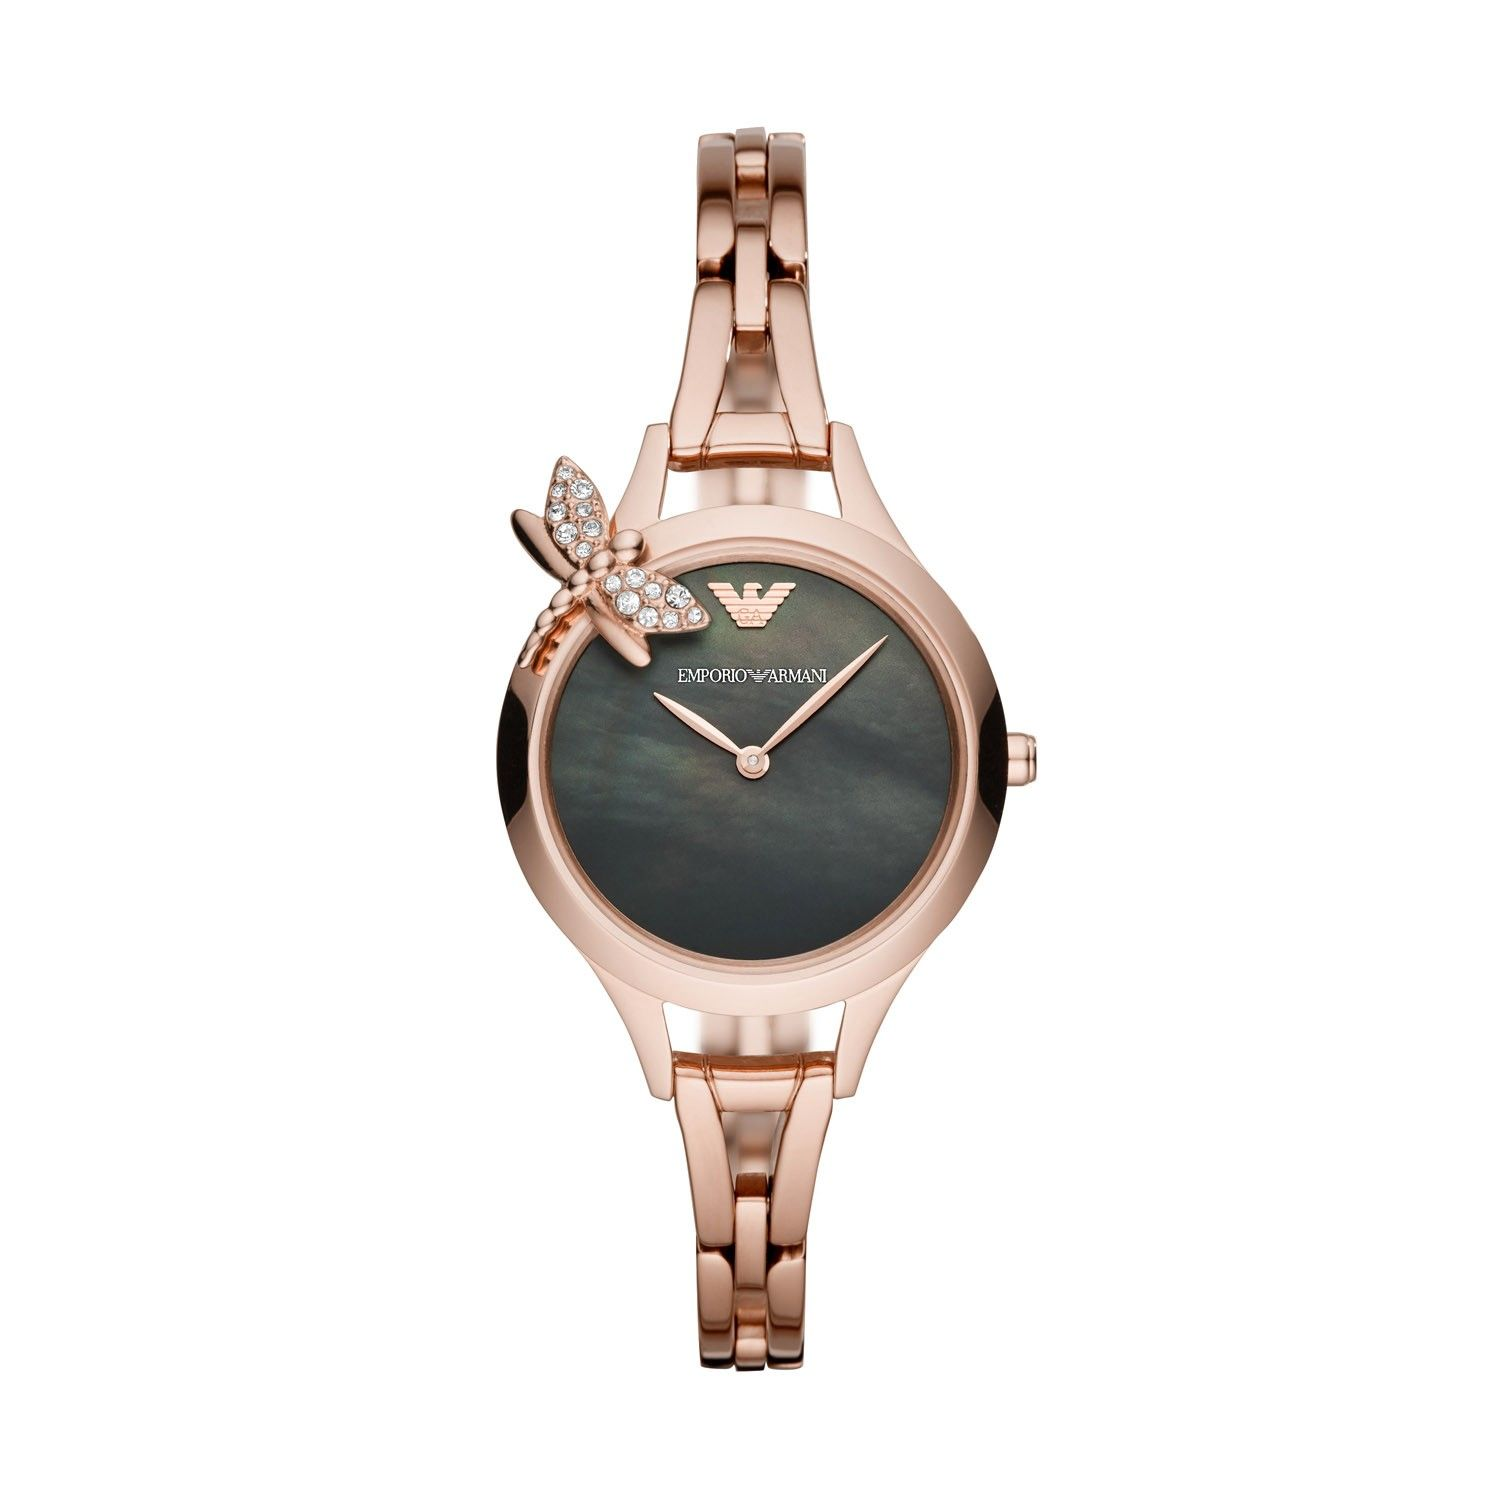 8a93b99a Emporio Armani Black Pearl 32mm Ladies' Watch | Designer watches ...